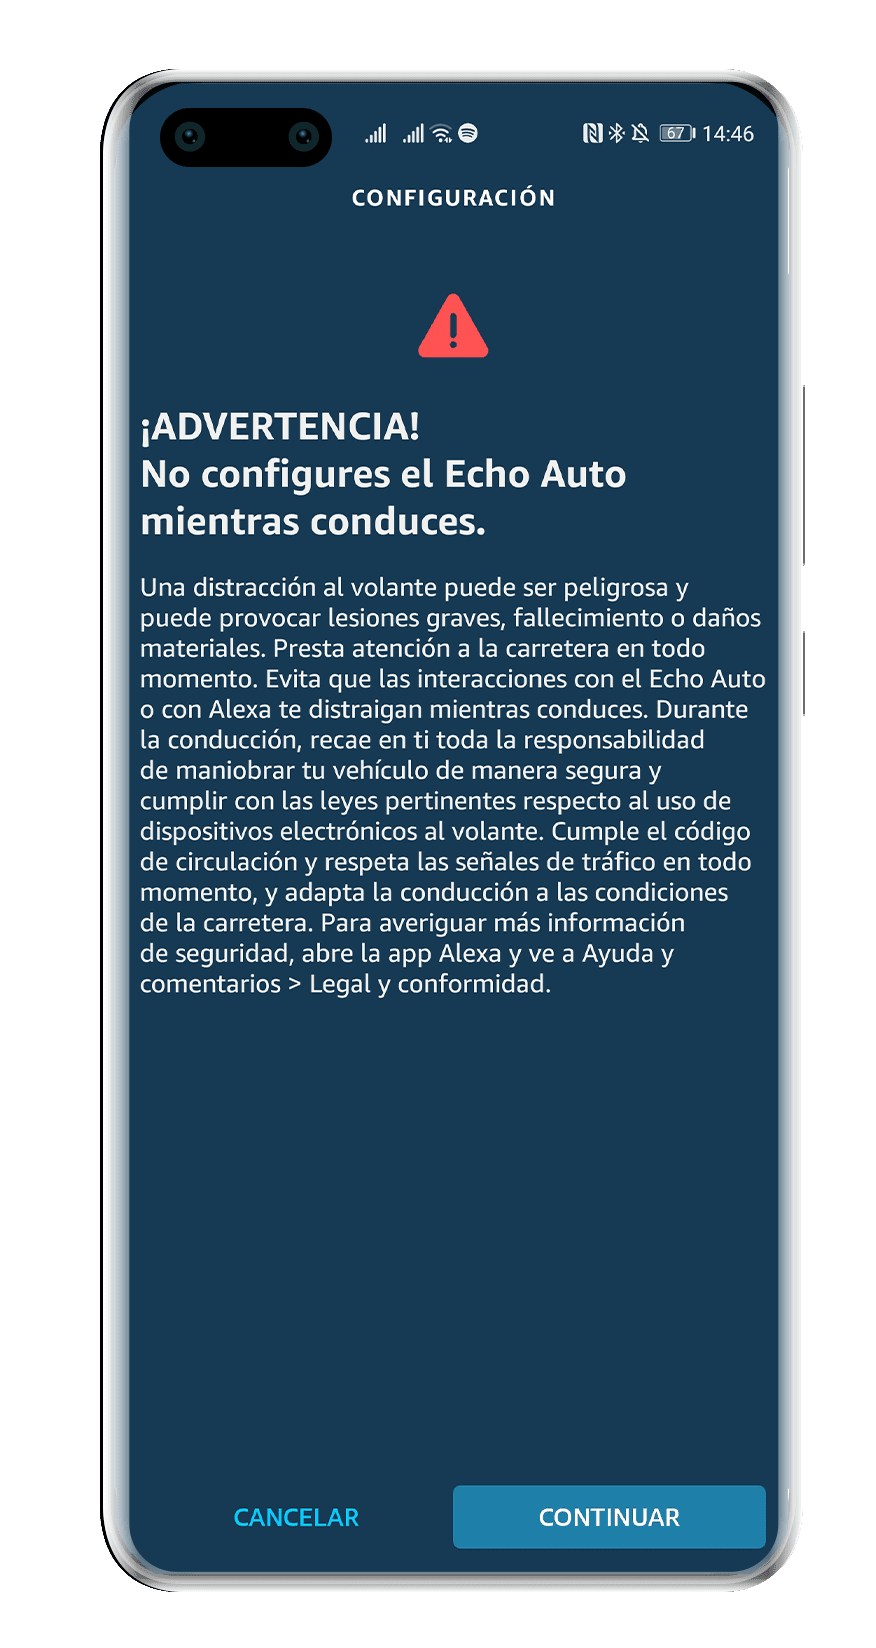 advertencia-conducir-Amazon-Echo-Auto